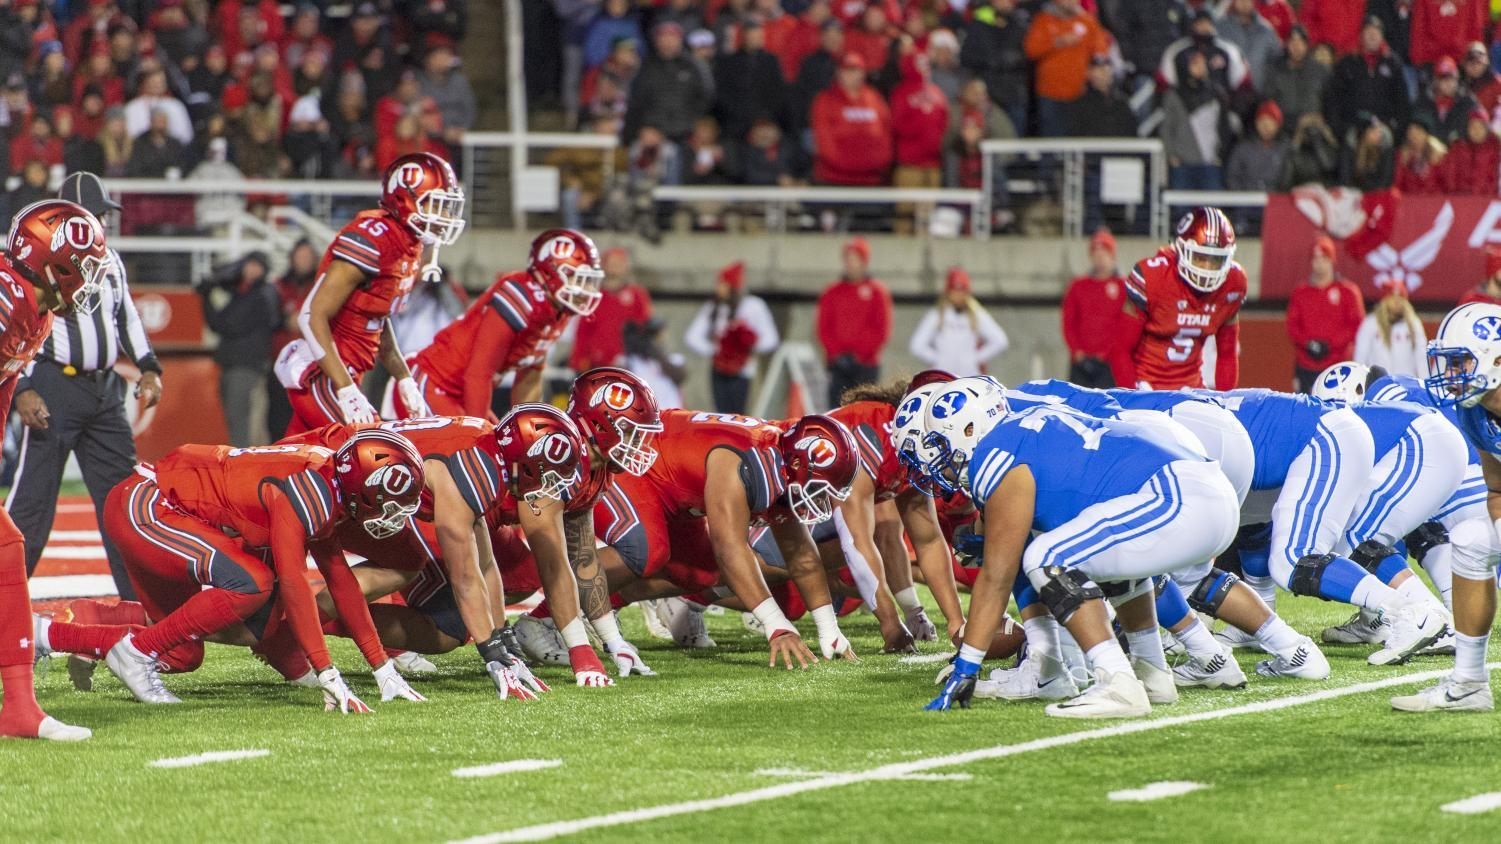 University of Utah offense lines up against Brigham Young University during an NCAA Football game at Rice Eccles Stadium in Salt Lake City, Utah on Saturday, Nov. 24, 2018. (Photo by Kiffer Creveling | The Daily Utah Chronicle)